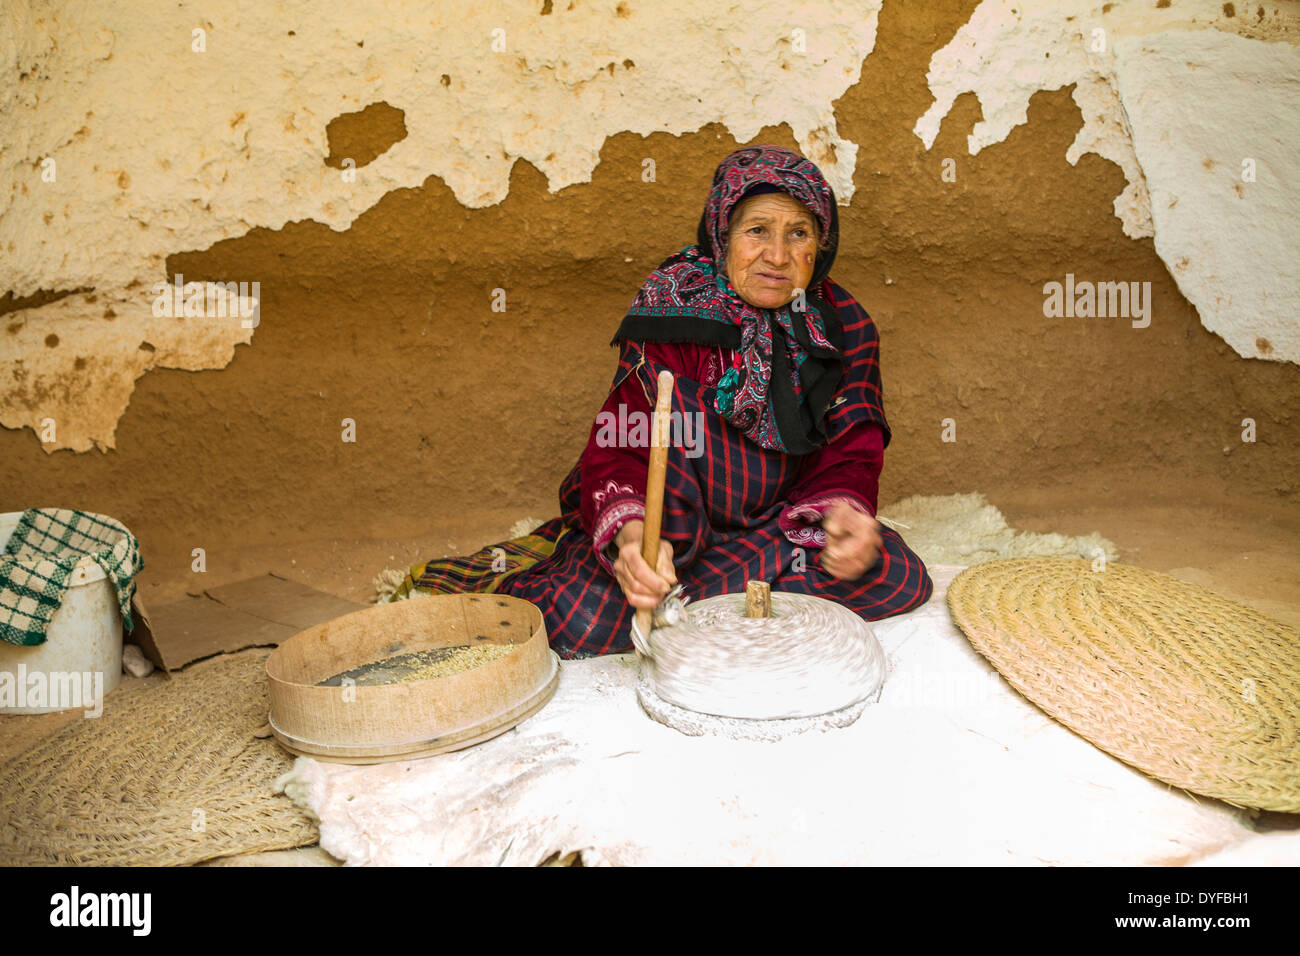 A Berber female grinding to prepare flour for bread. - Stock Image